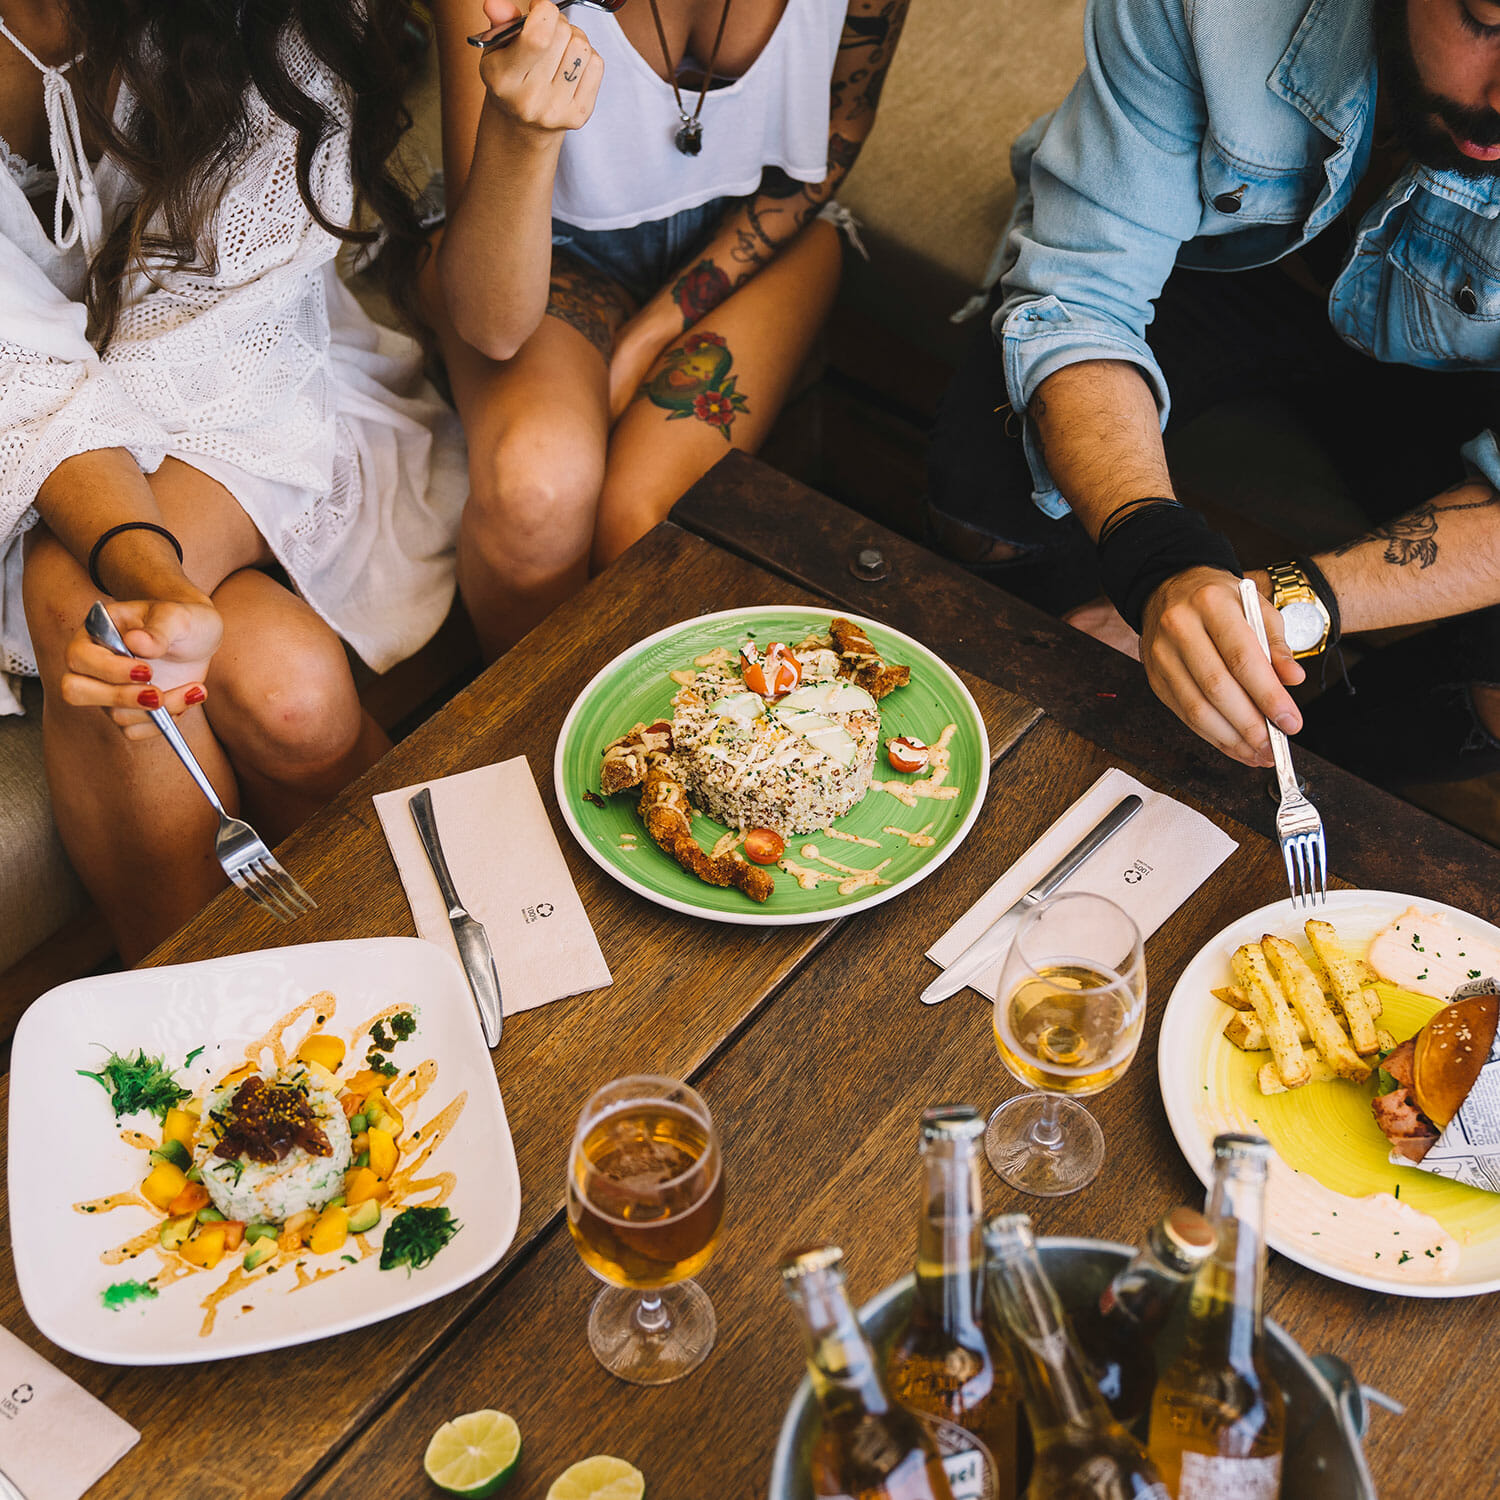 Discover how restaurants, diners and taverns find success with new mover marketing